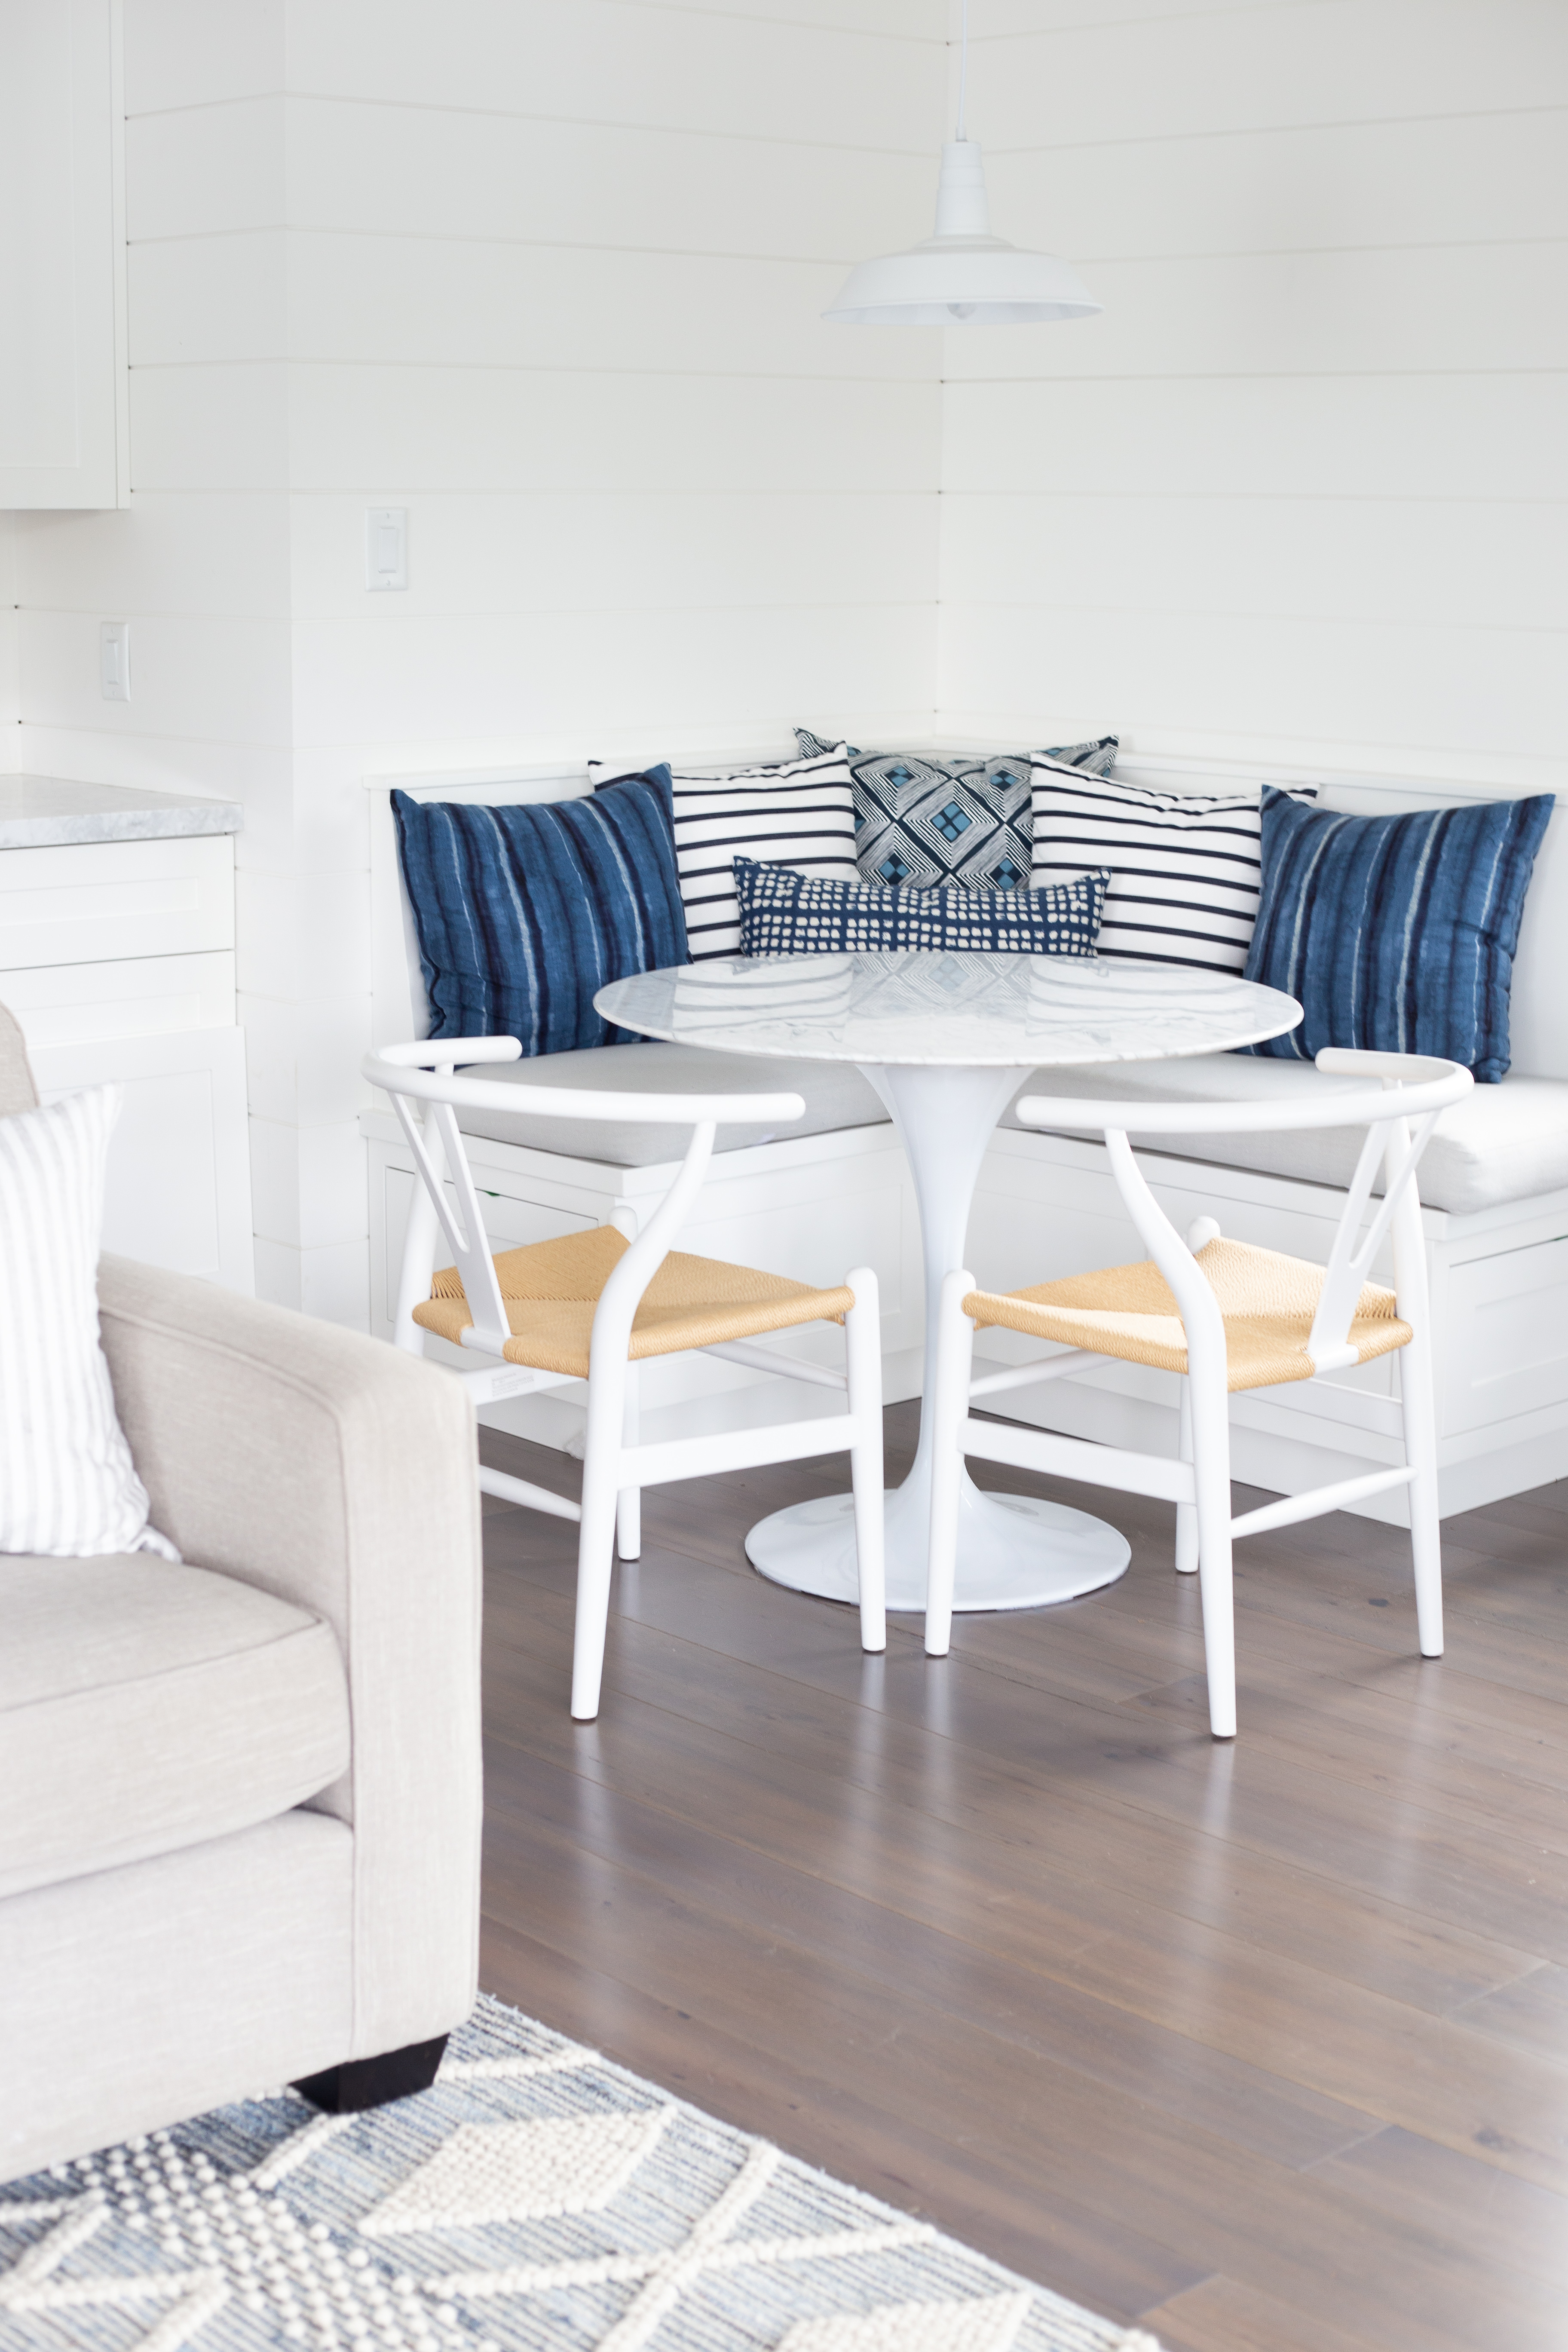 banquette with blue pillows